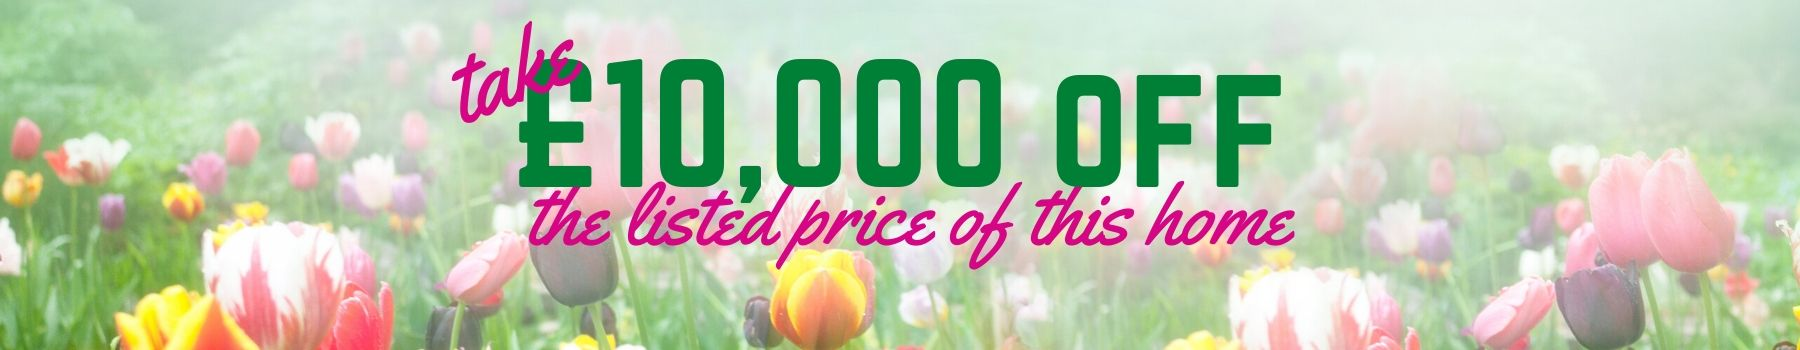 10000 off listed price of this home banner flowers